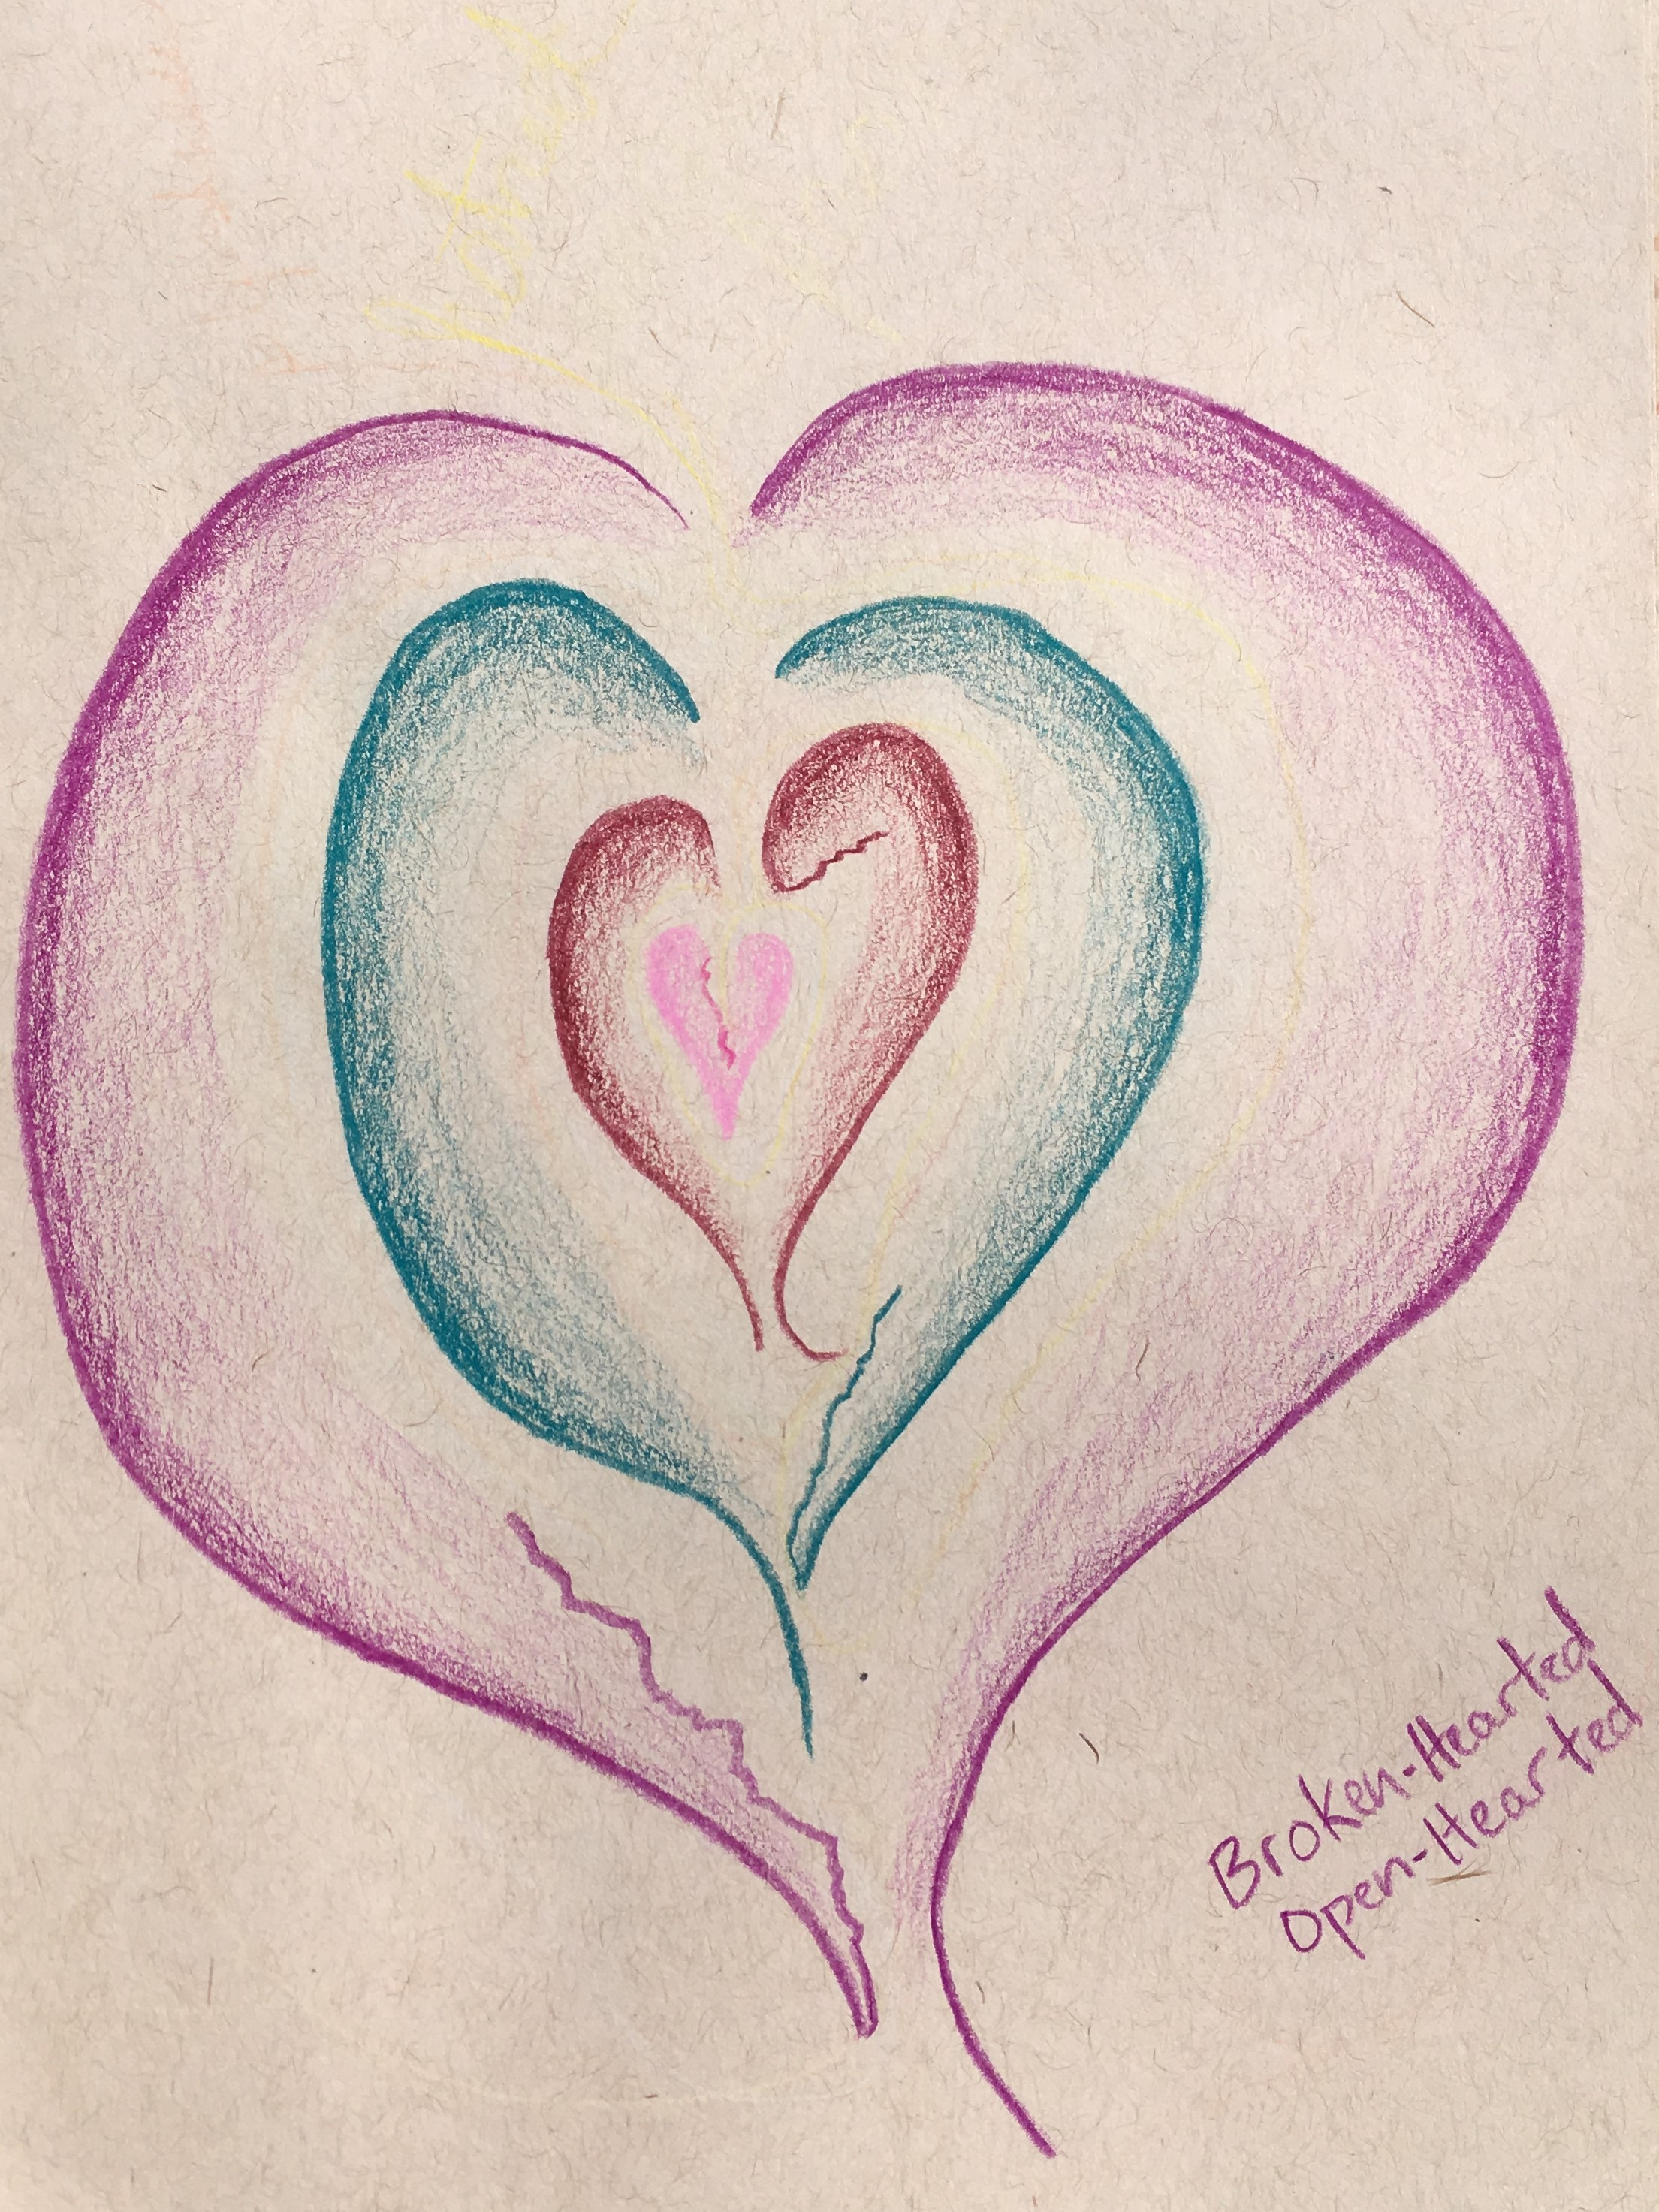 I created this image in October 2015. It was one of the first heart images I ever drew.